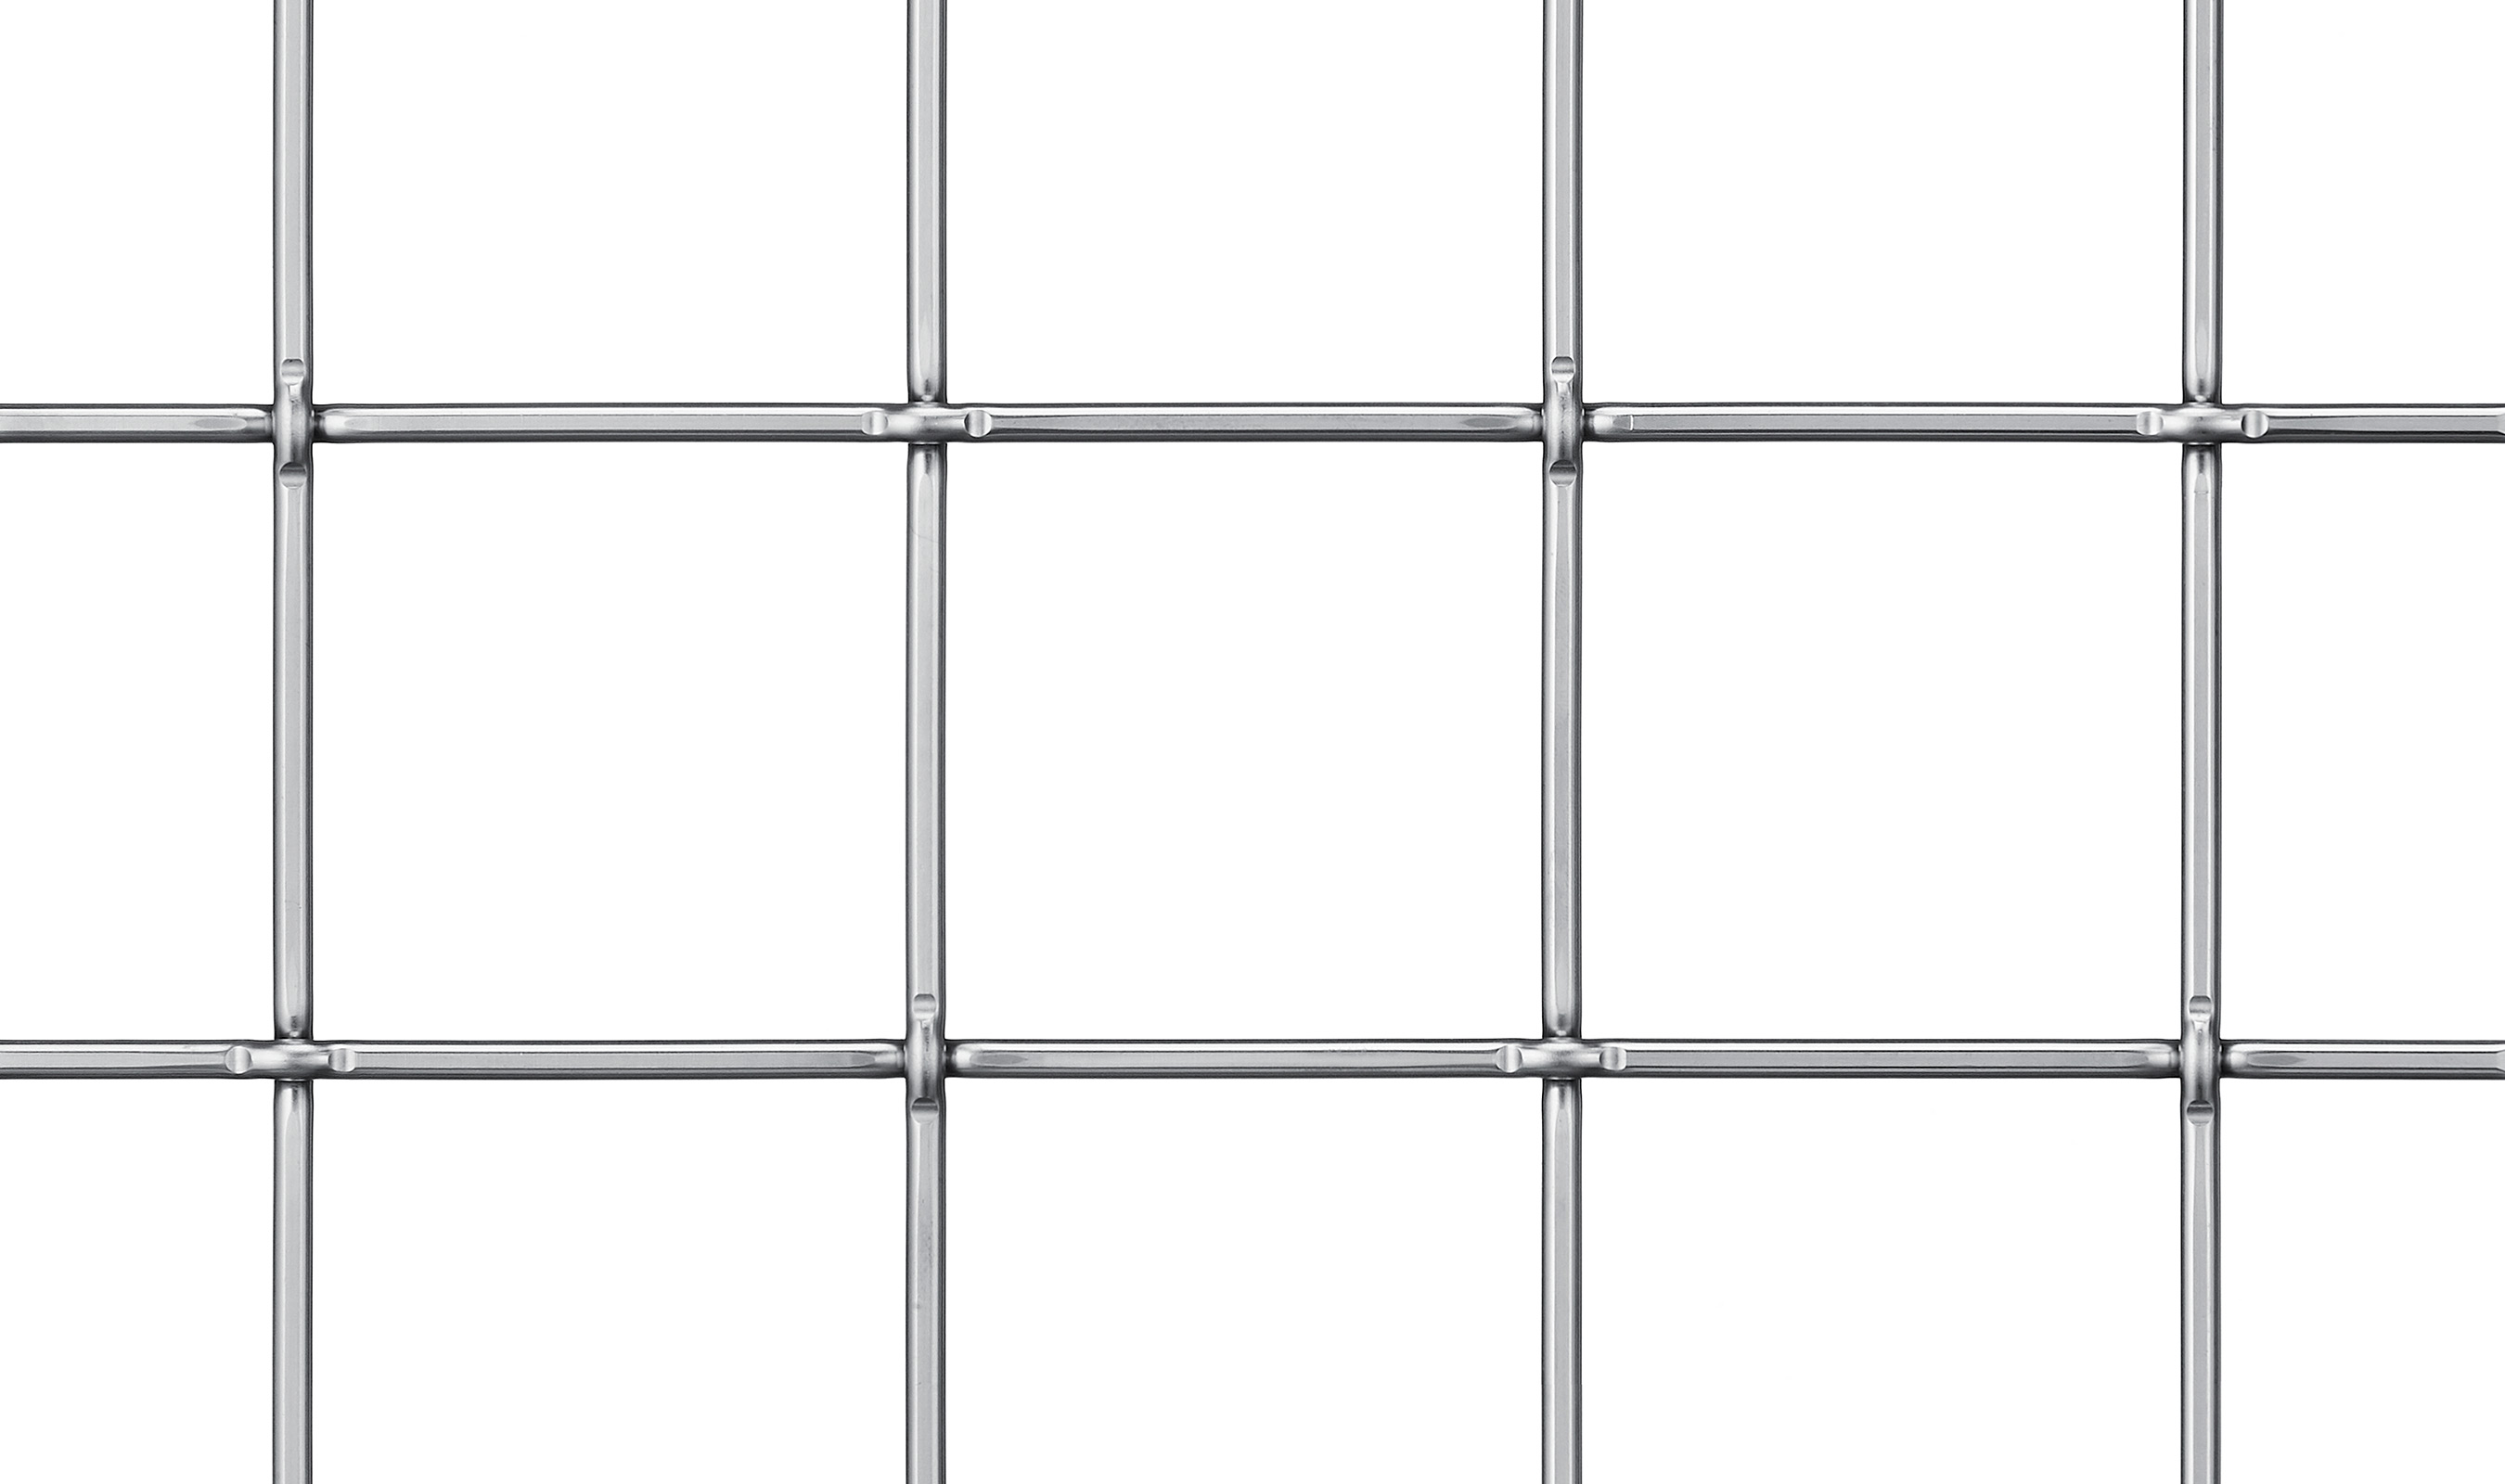 L-196 Architectural Wire Mesh pattern